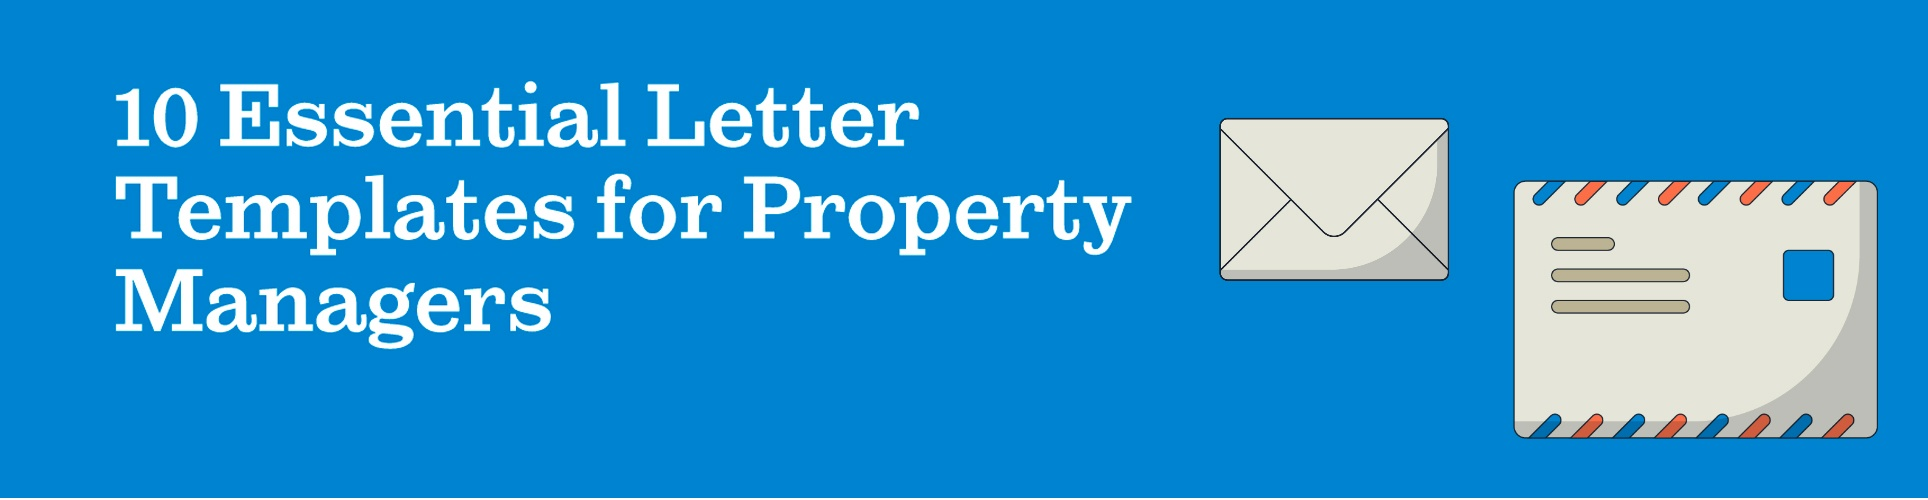 10 essential letter templates for property managers lp